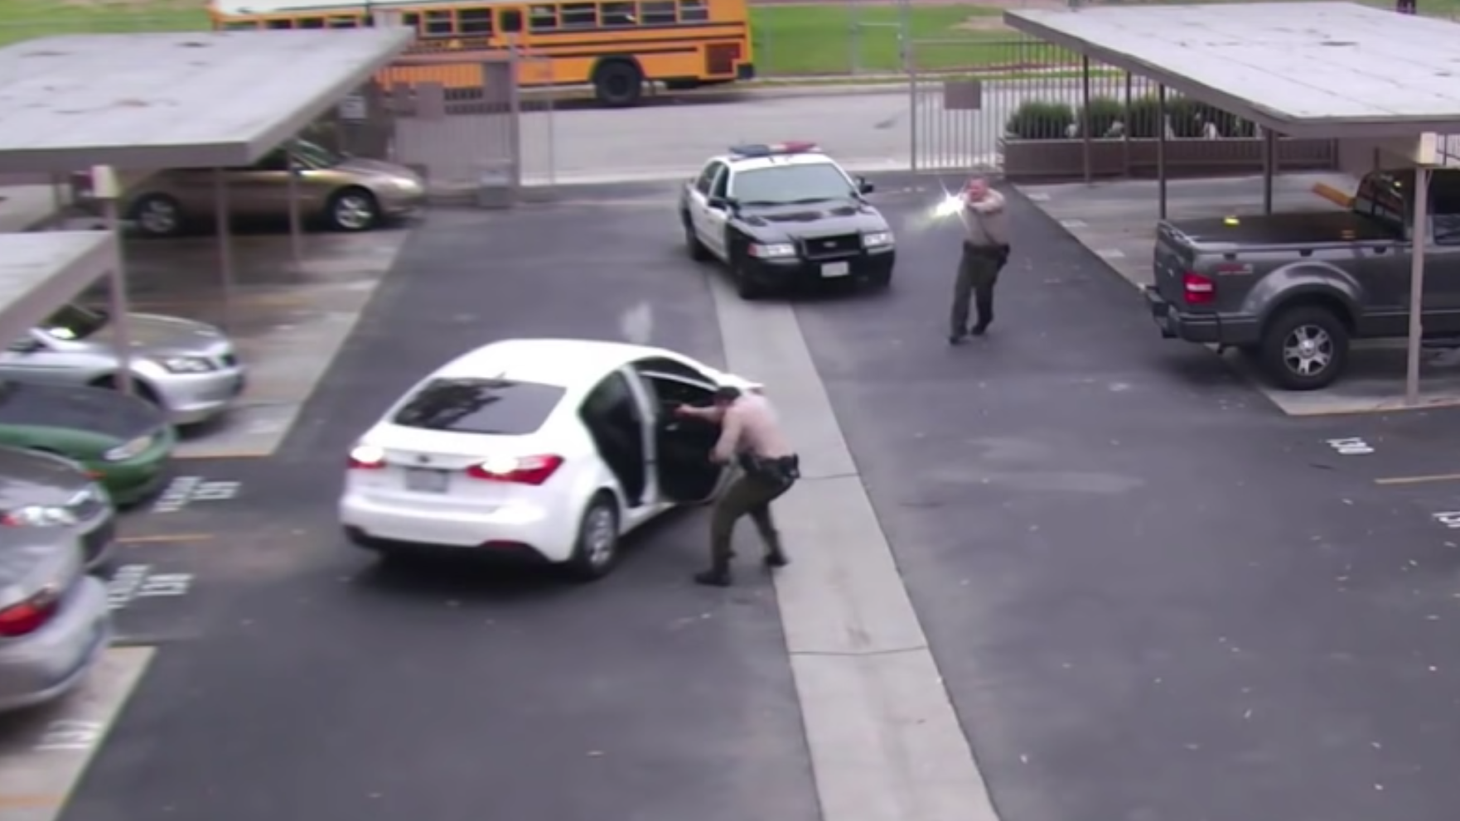 A still from the LA Sheriff's Dept. video.